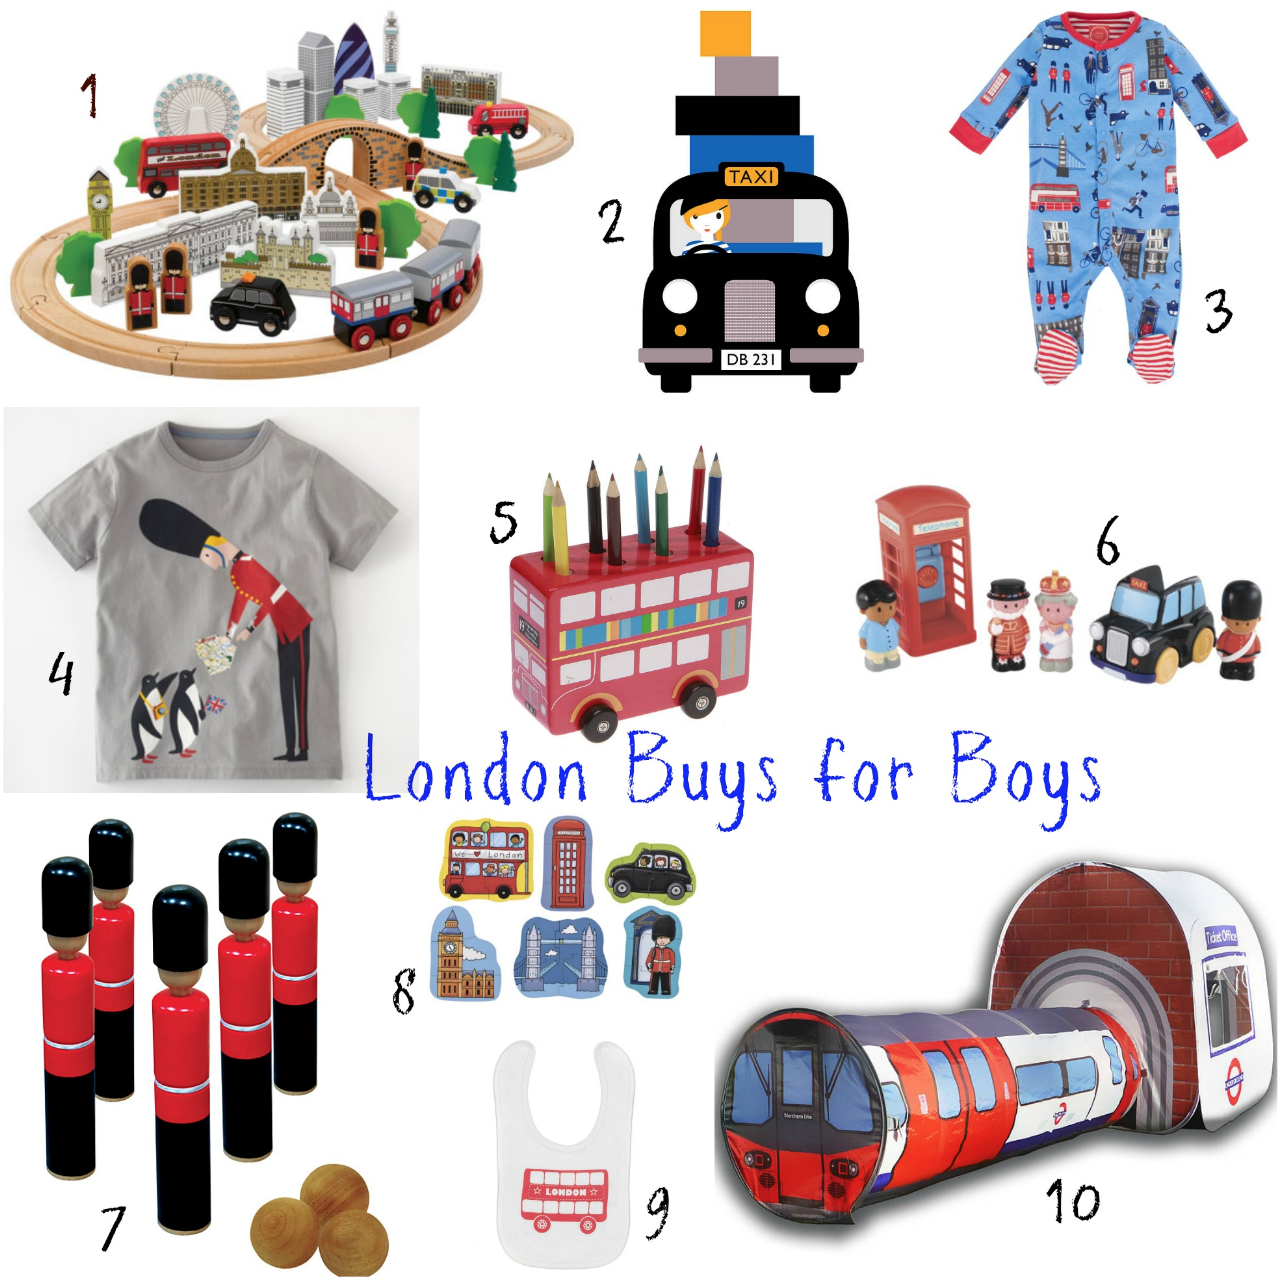 mamasVIB | V. I. BUYS: 10 Great London themed buys for boys, 10 Great London themed buys for boys | London themes toys | toys for boys | the little white company | find me a gift | mothercare bode | scamp | london Bus | london cab | london city | english gifts | cute gifts for boys | boys toys | happy land | puzzles | toy bus and car | taxi | black cab | skittles | london guards | tent | underground tent | london capital | capital | toys | games for little boys | wooden classic toys | bus |